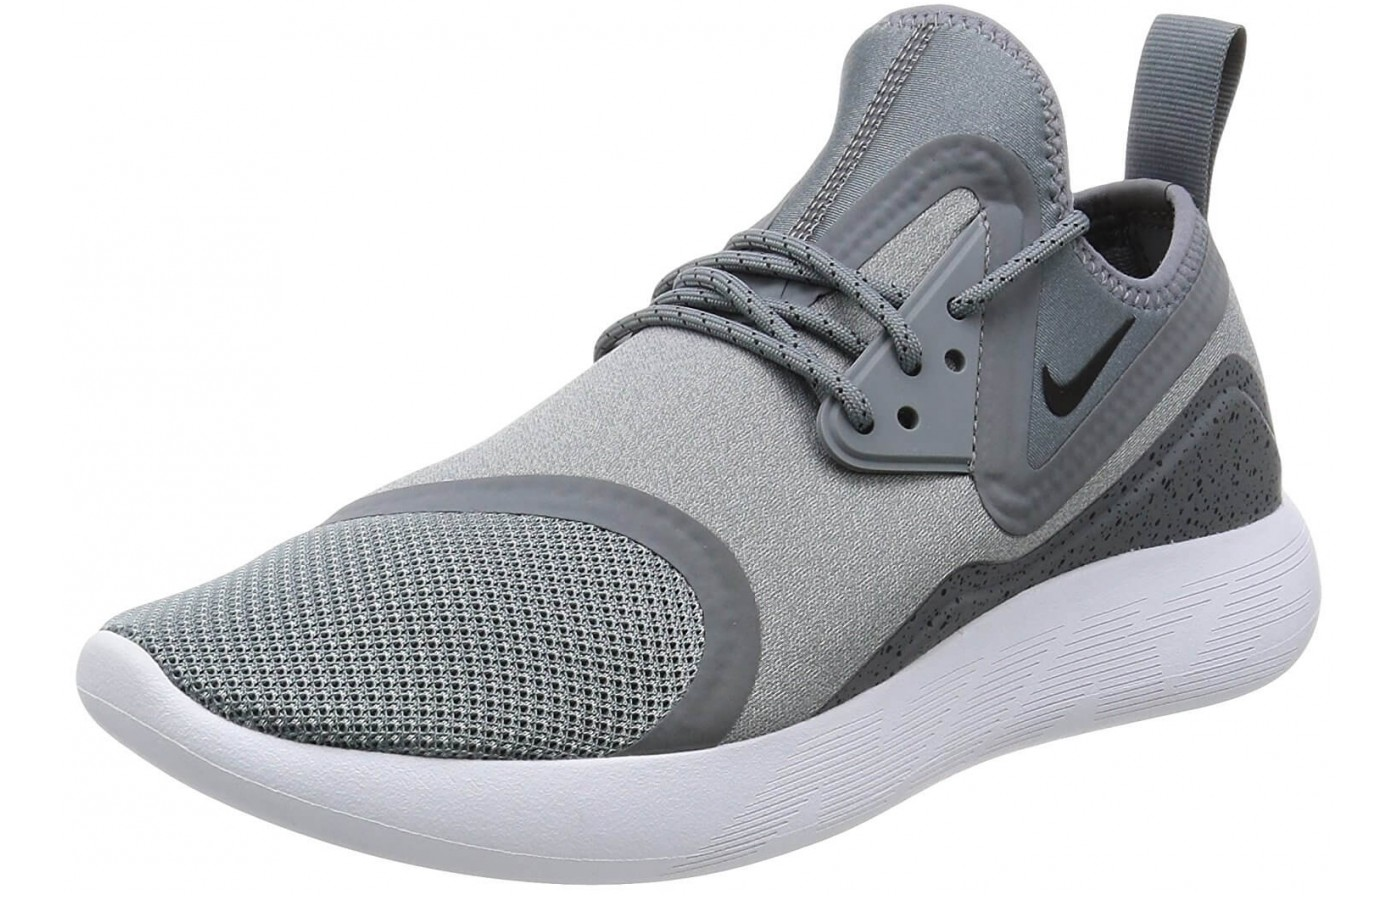 competitive price 5106a 9b22e The ankle loop on the Nike LunarCharge Essential provides an easier time  putting on these shoes ...